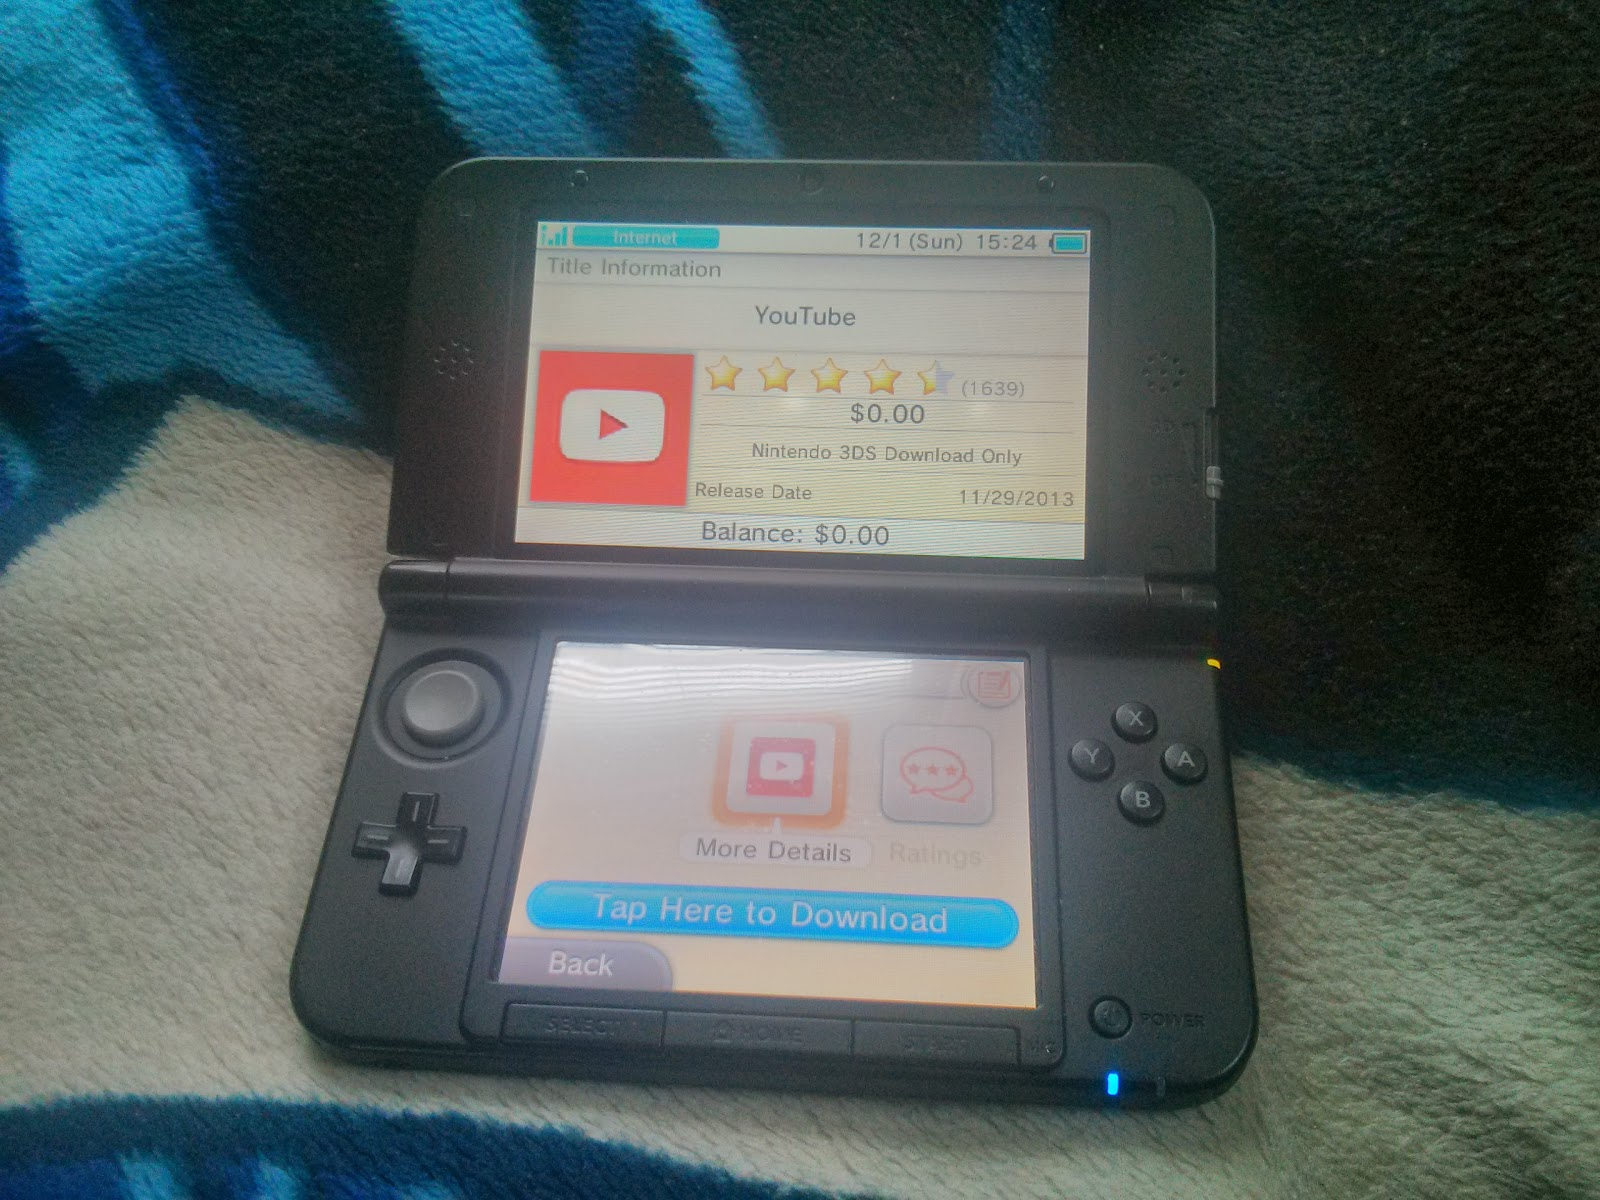 YouTube is now available for the Nintendo 3DS